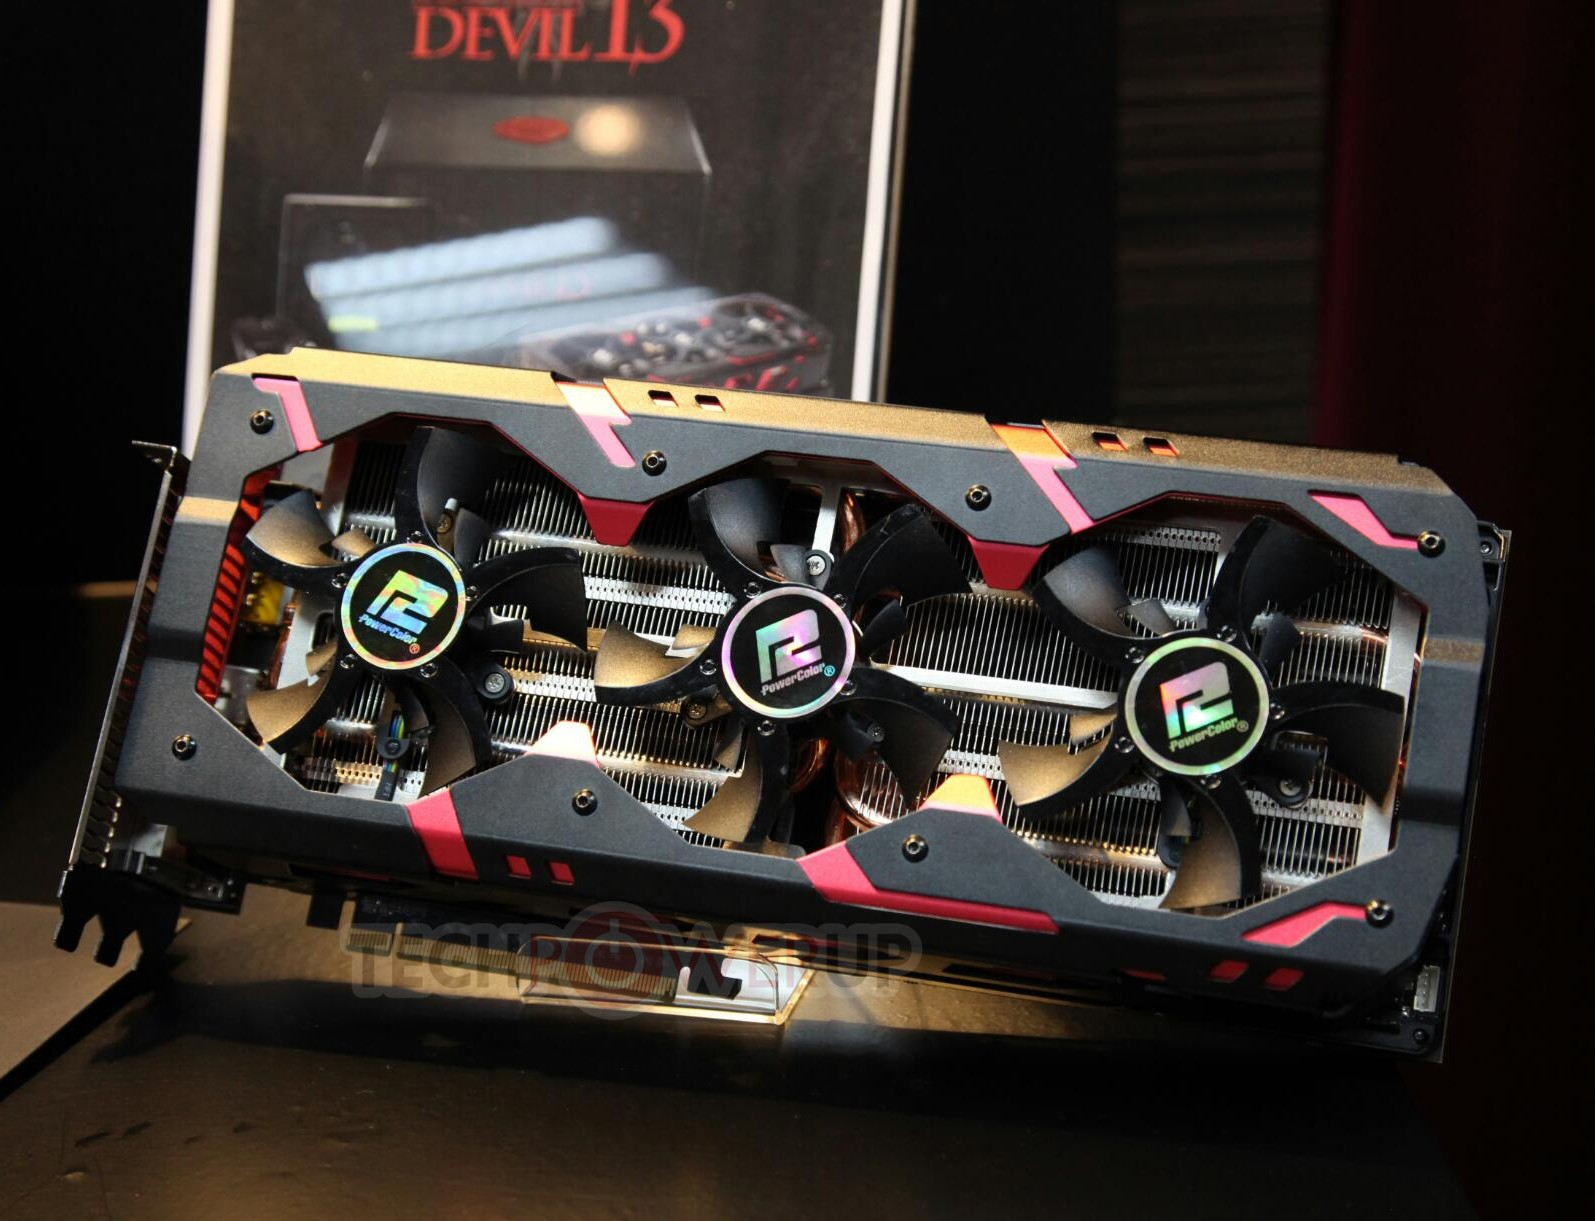 PowerColor Radeon R9 295X2 Devil13 (1)